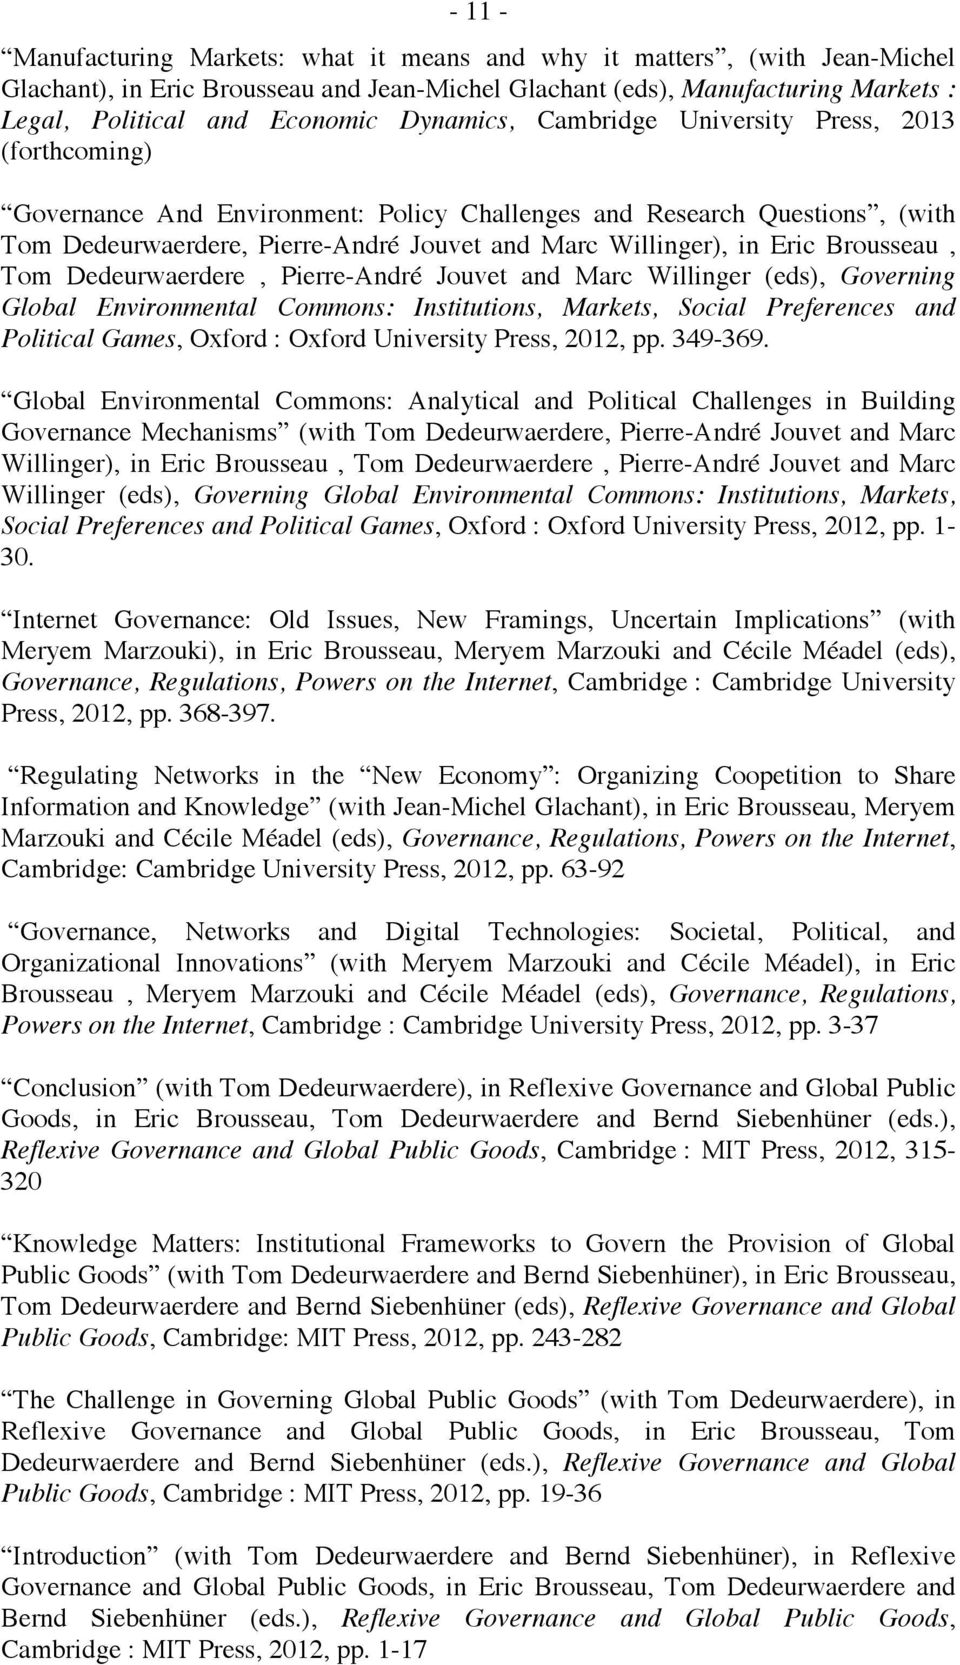 Eric Brousseau, Tom Dedeurwaerdere, Pierre-André Jouvet and Marc Willinger (eds), Governing Global Environmental Commons: Institutions, Markets, Social Preferences and Political Games, Oxford :